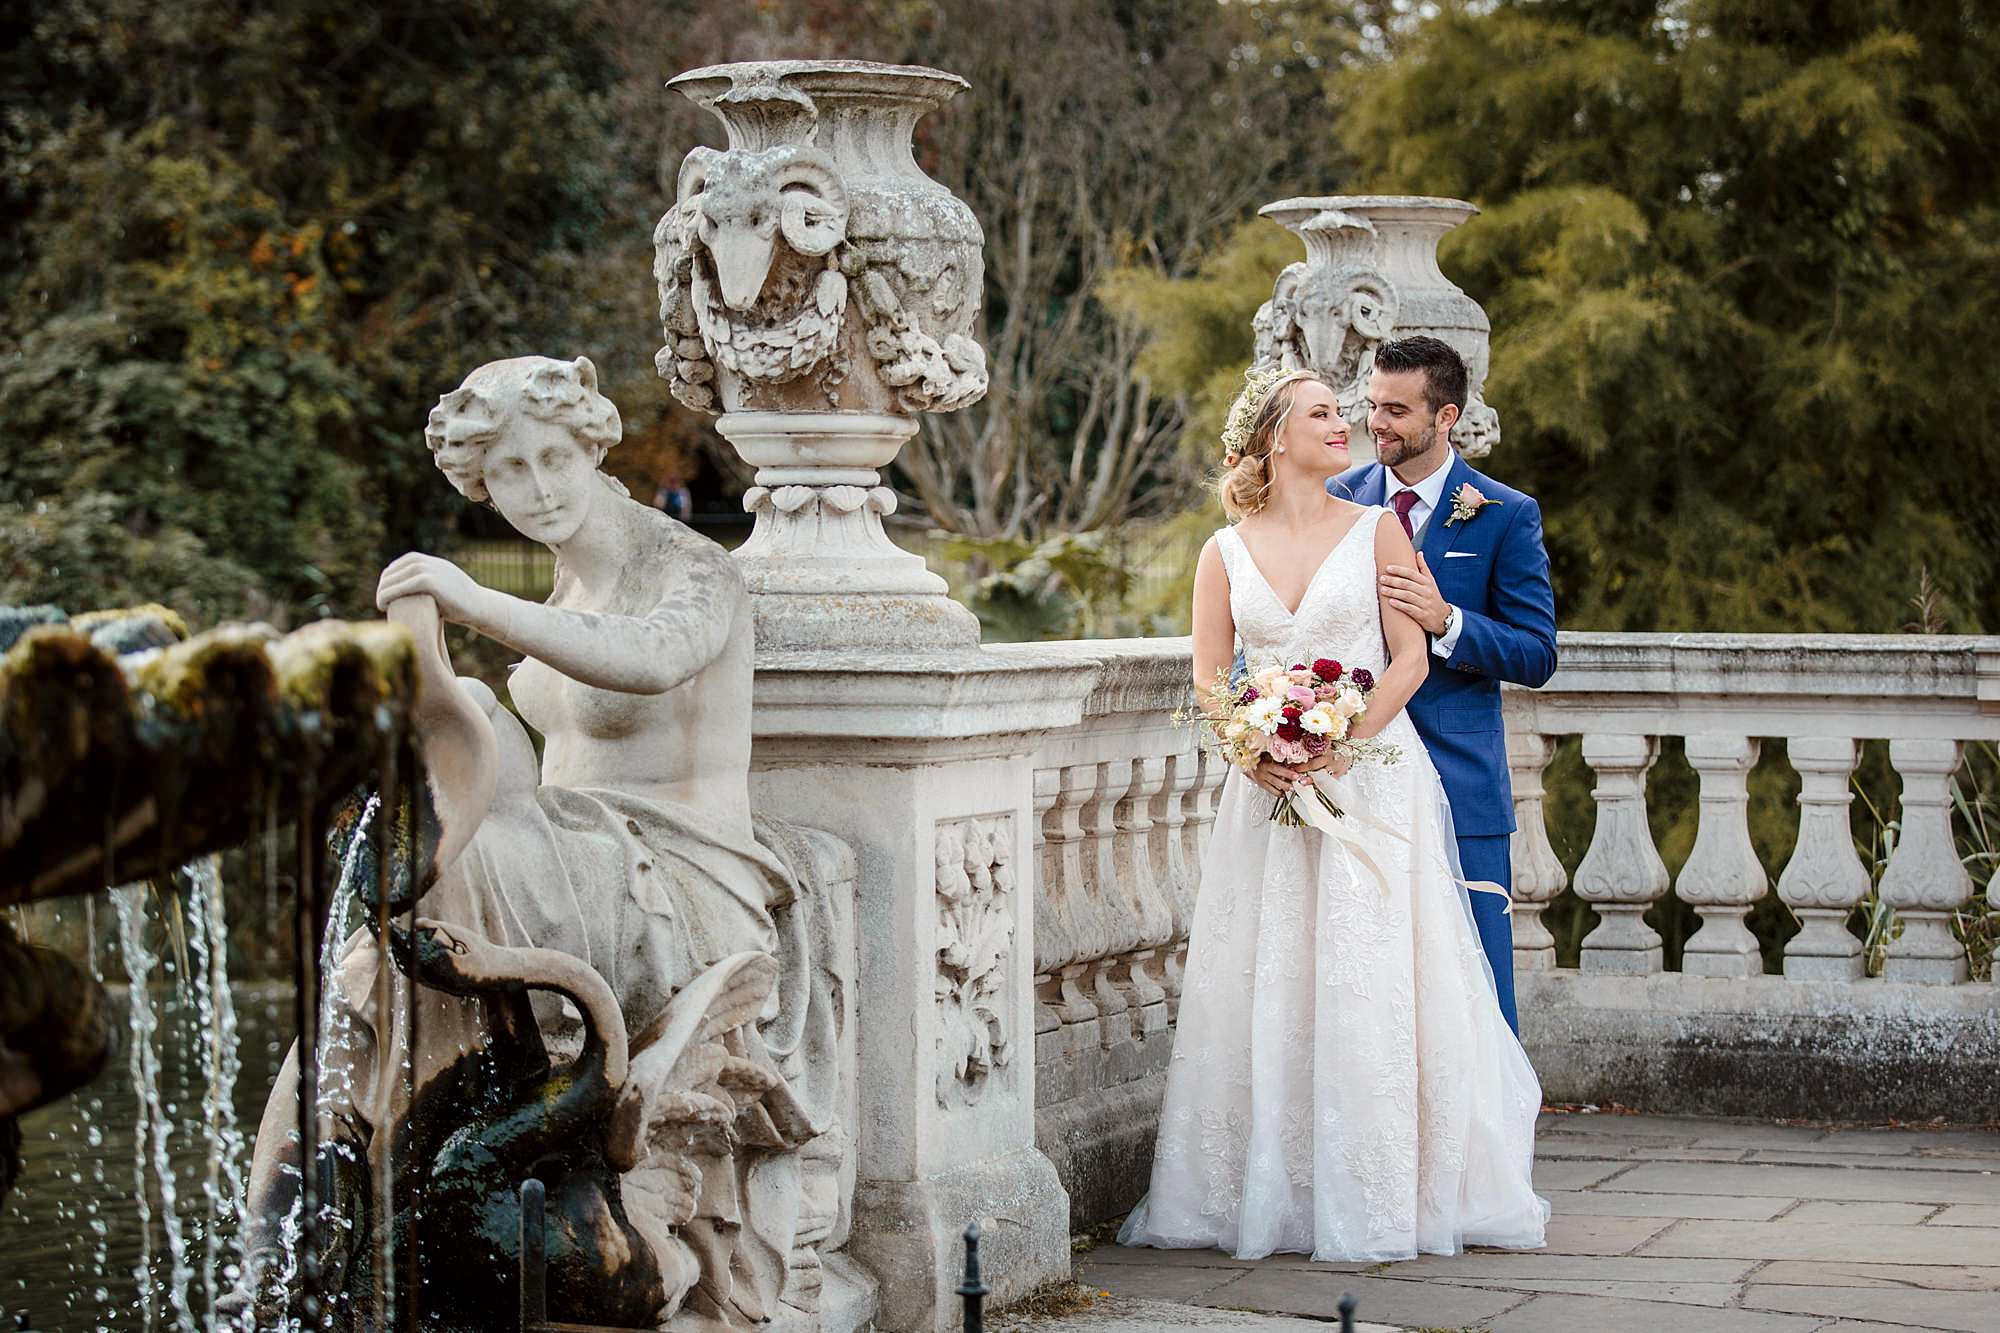 bride and groom by ornate wall in italian gardens